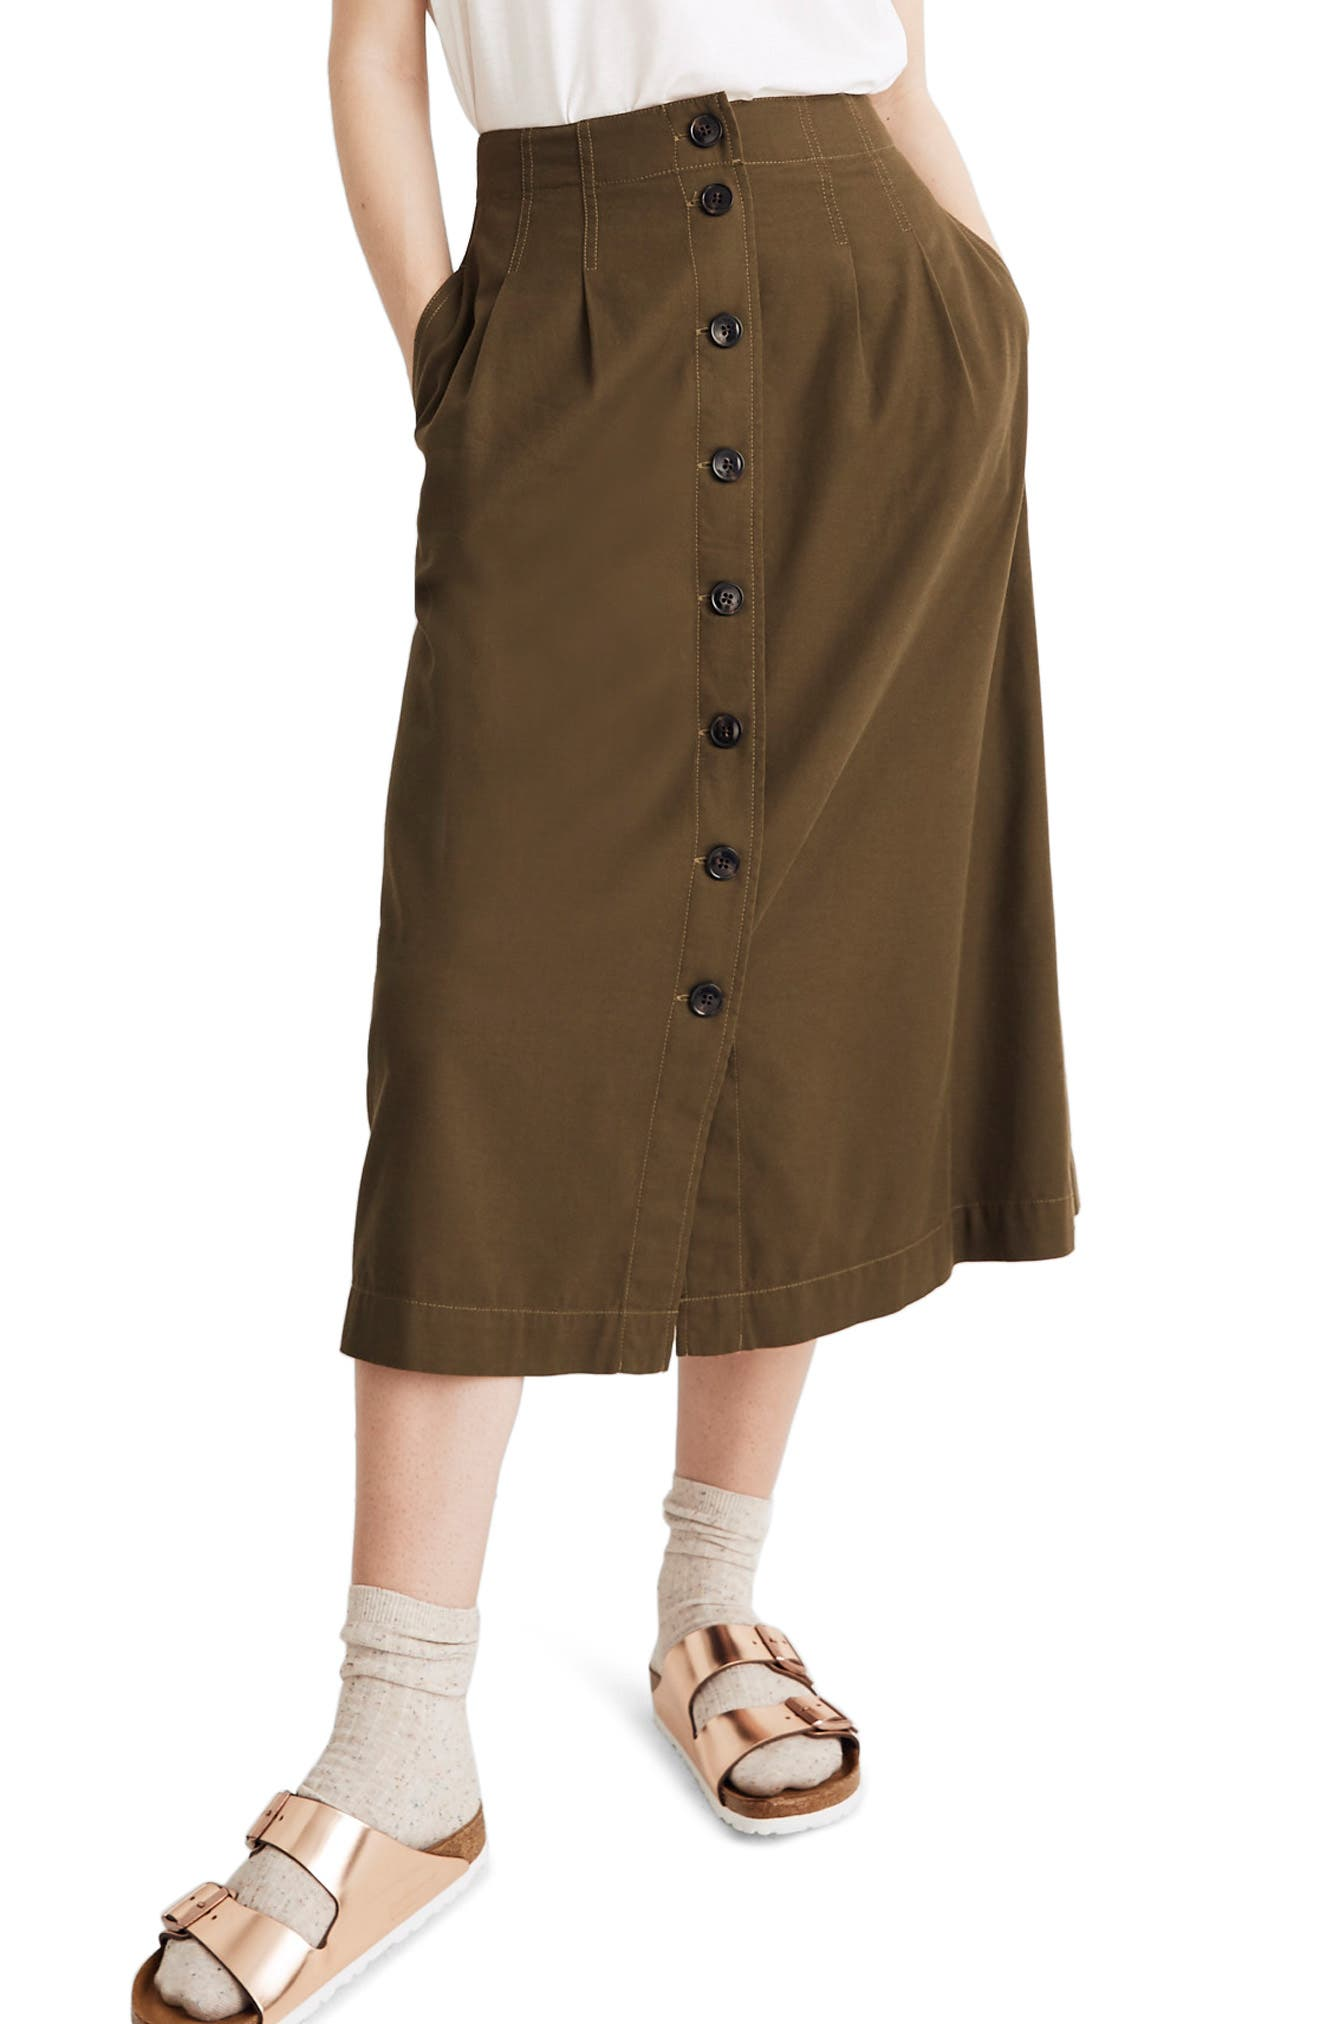 MADEWELL, Patio Button Front Midi Skirt, Main thumbnail 1, color, KALE